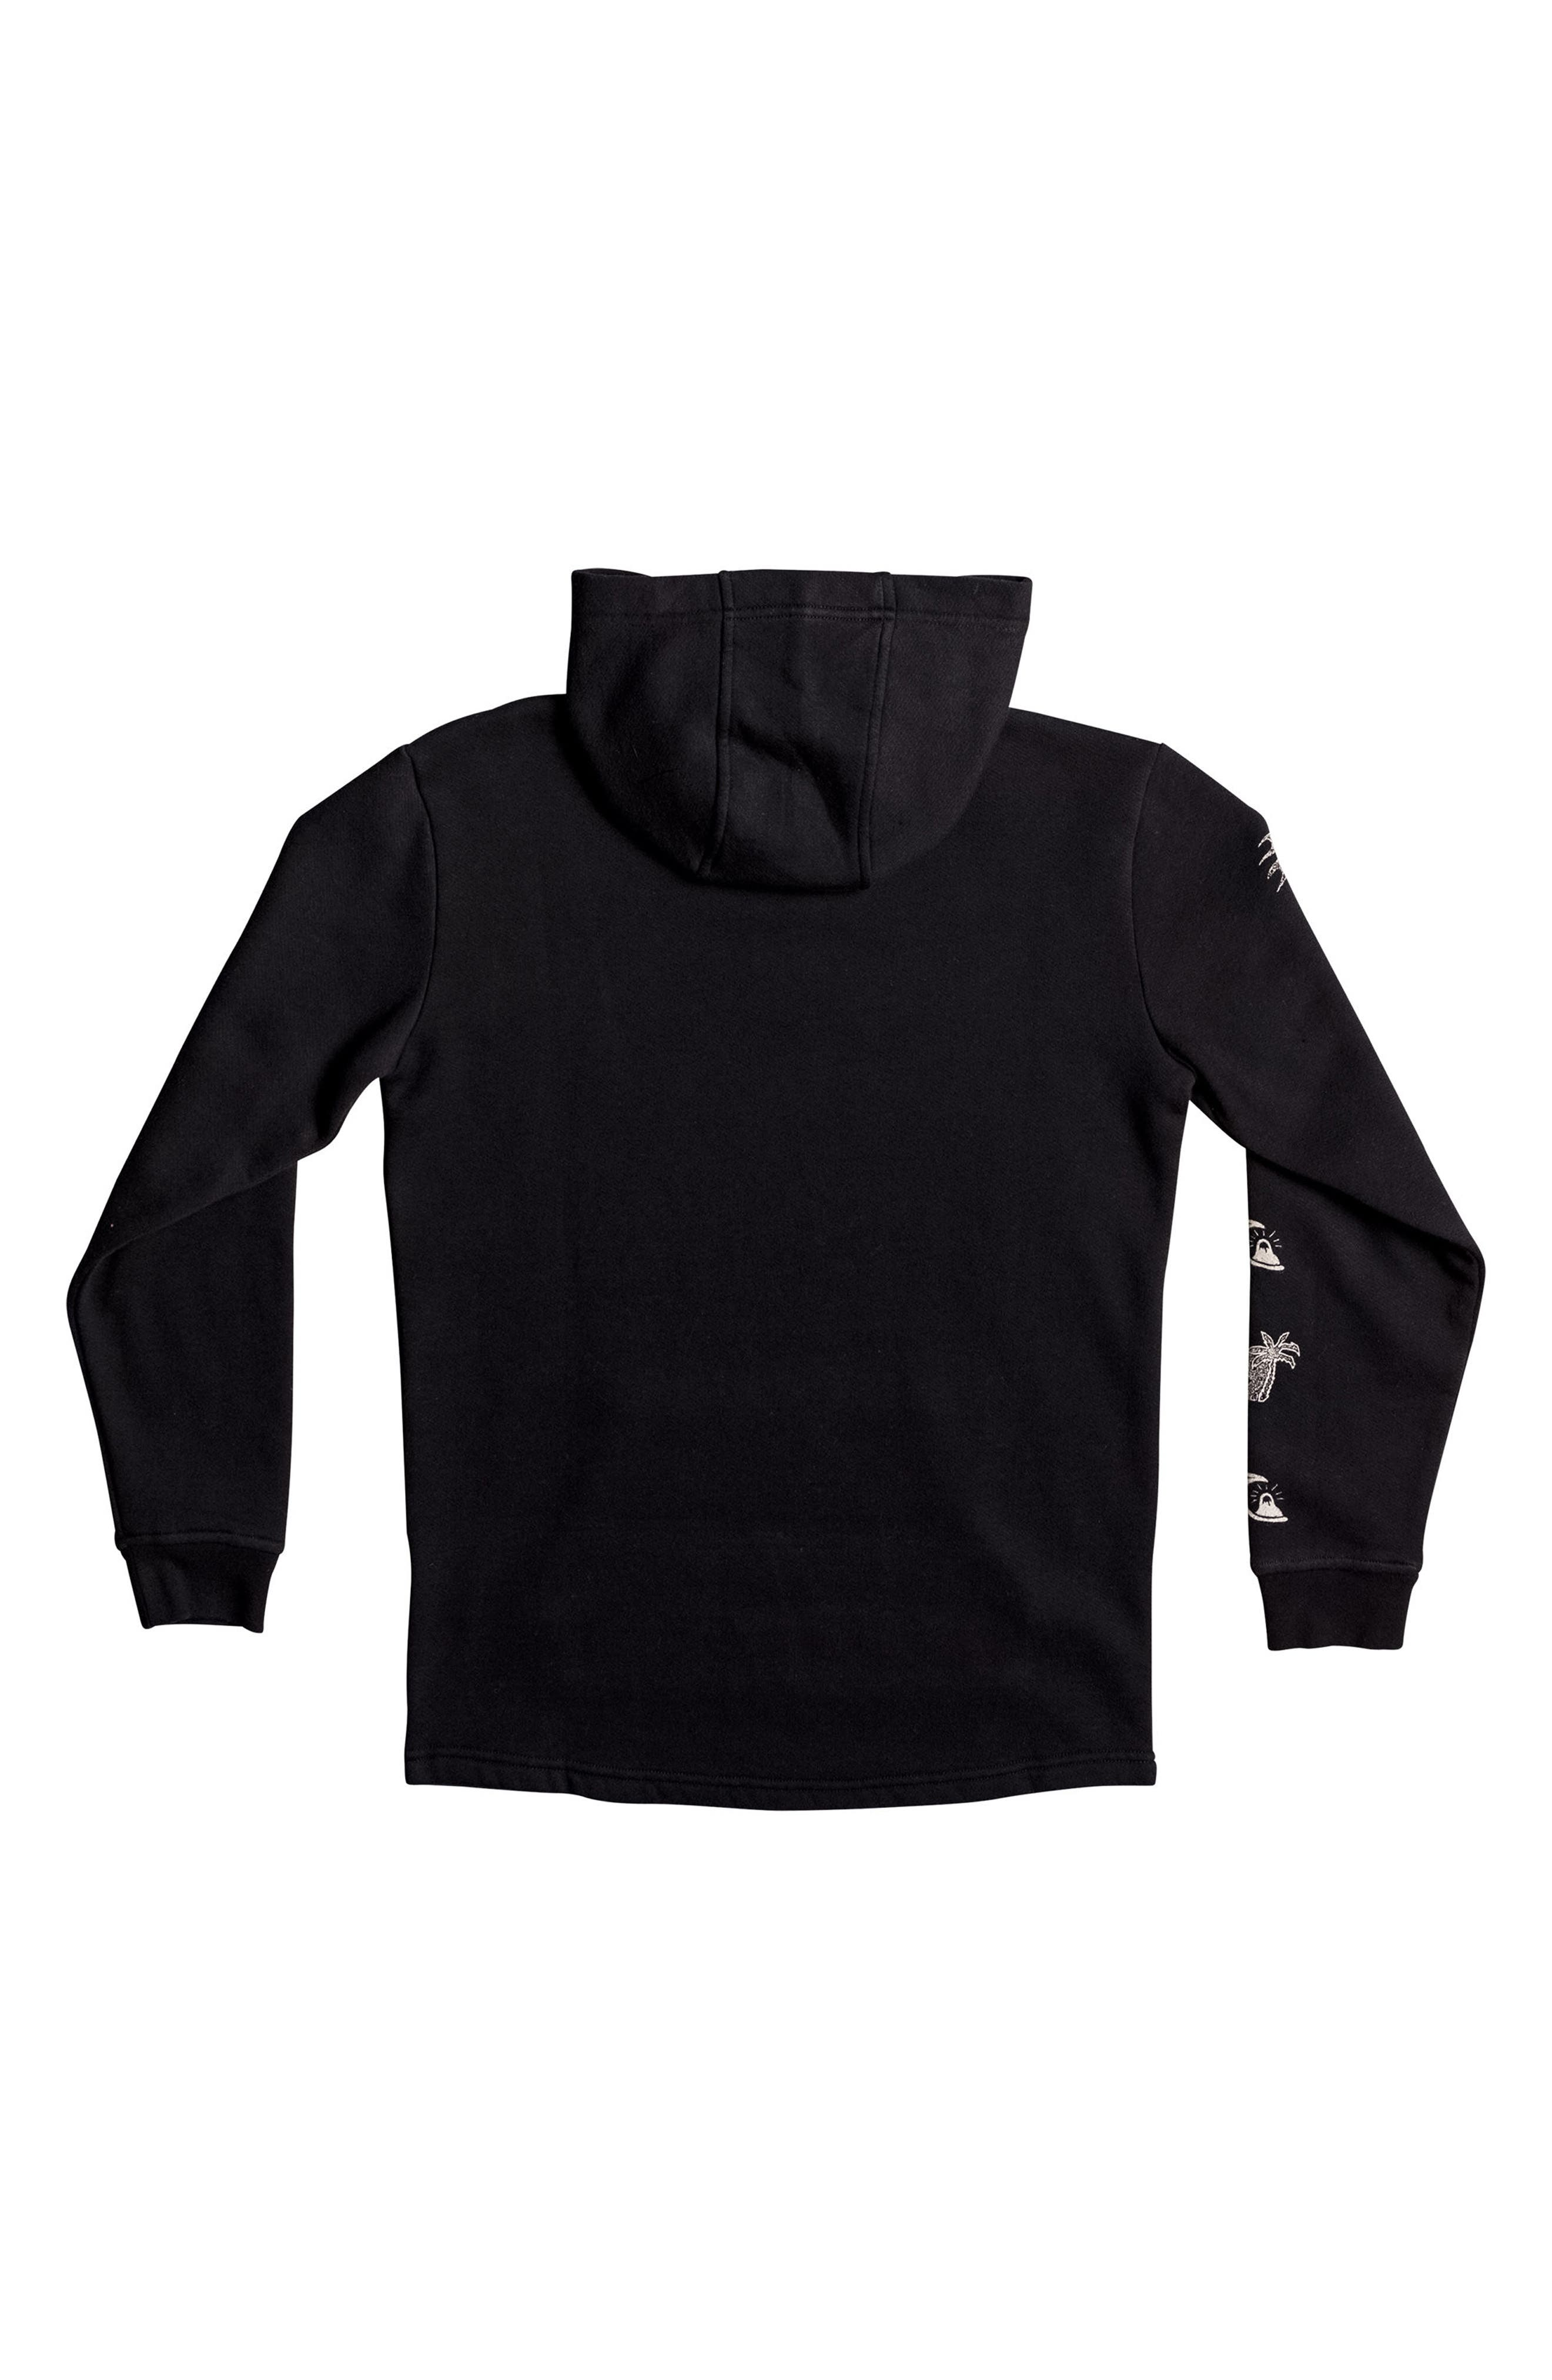 Alternate Image 2  - Quiksilver Venice Bliss Graphic Pullover Hoodie (Big Boys)